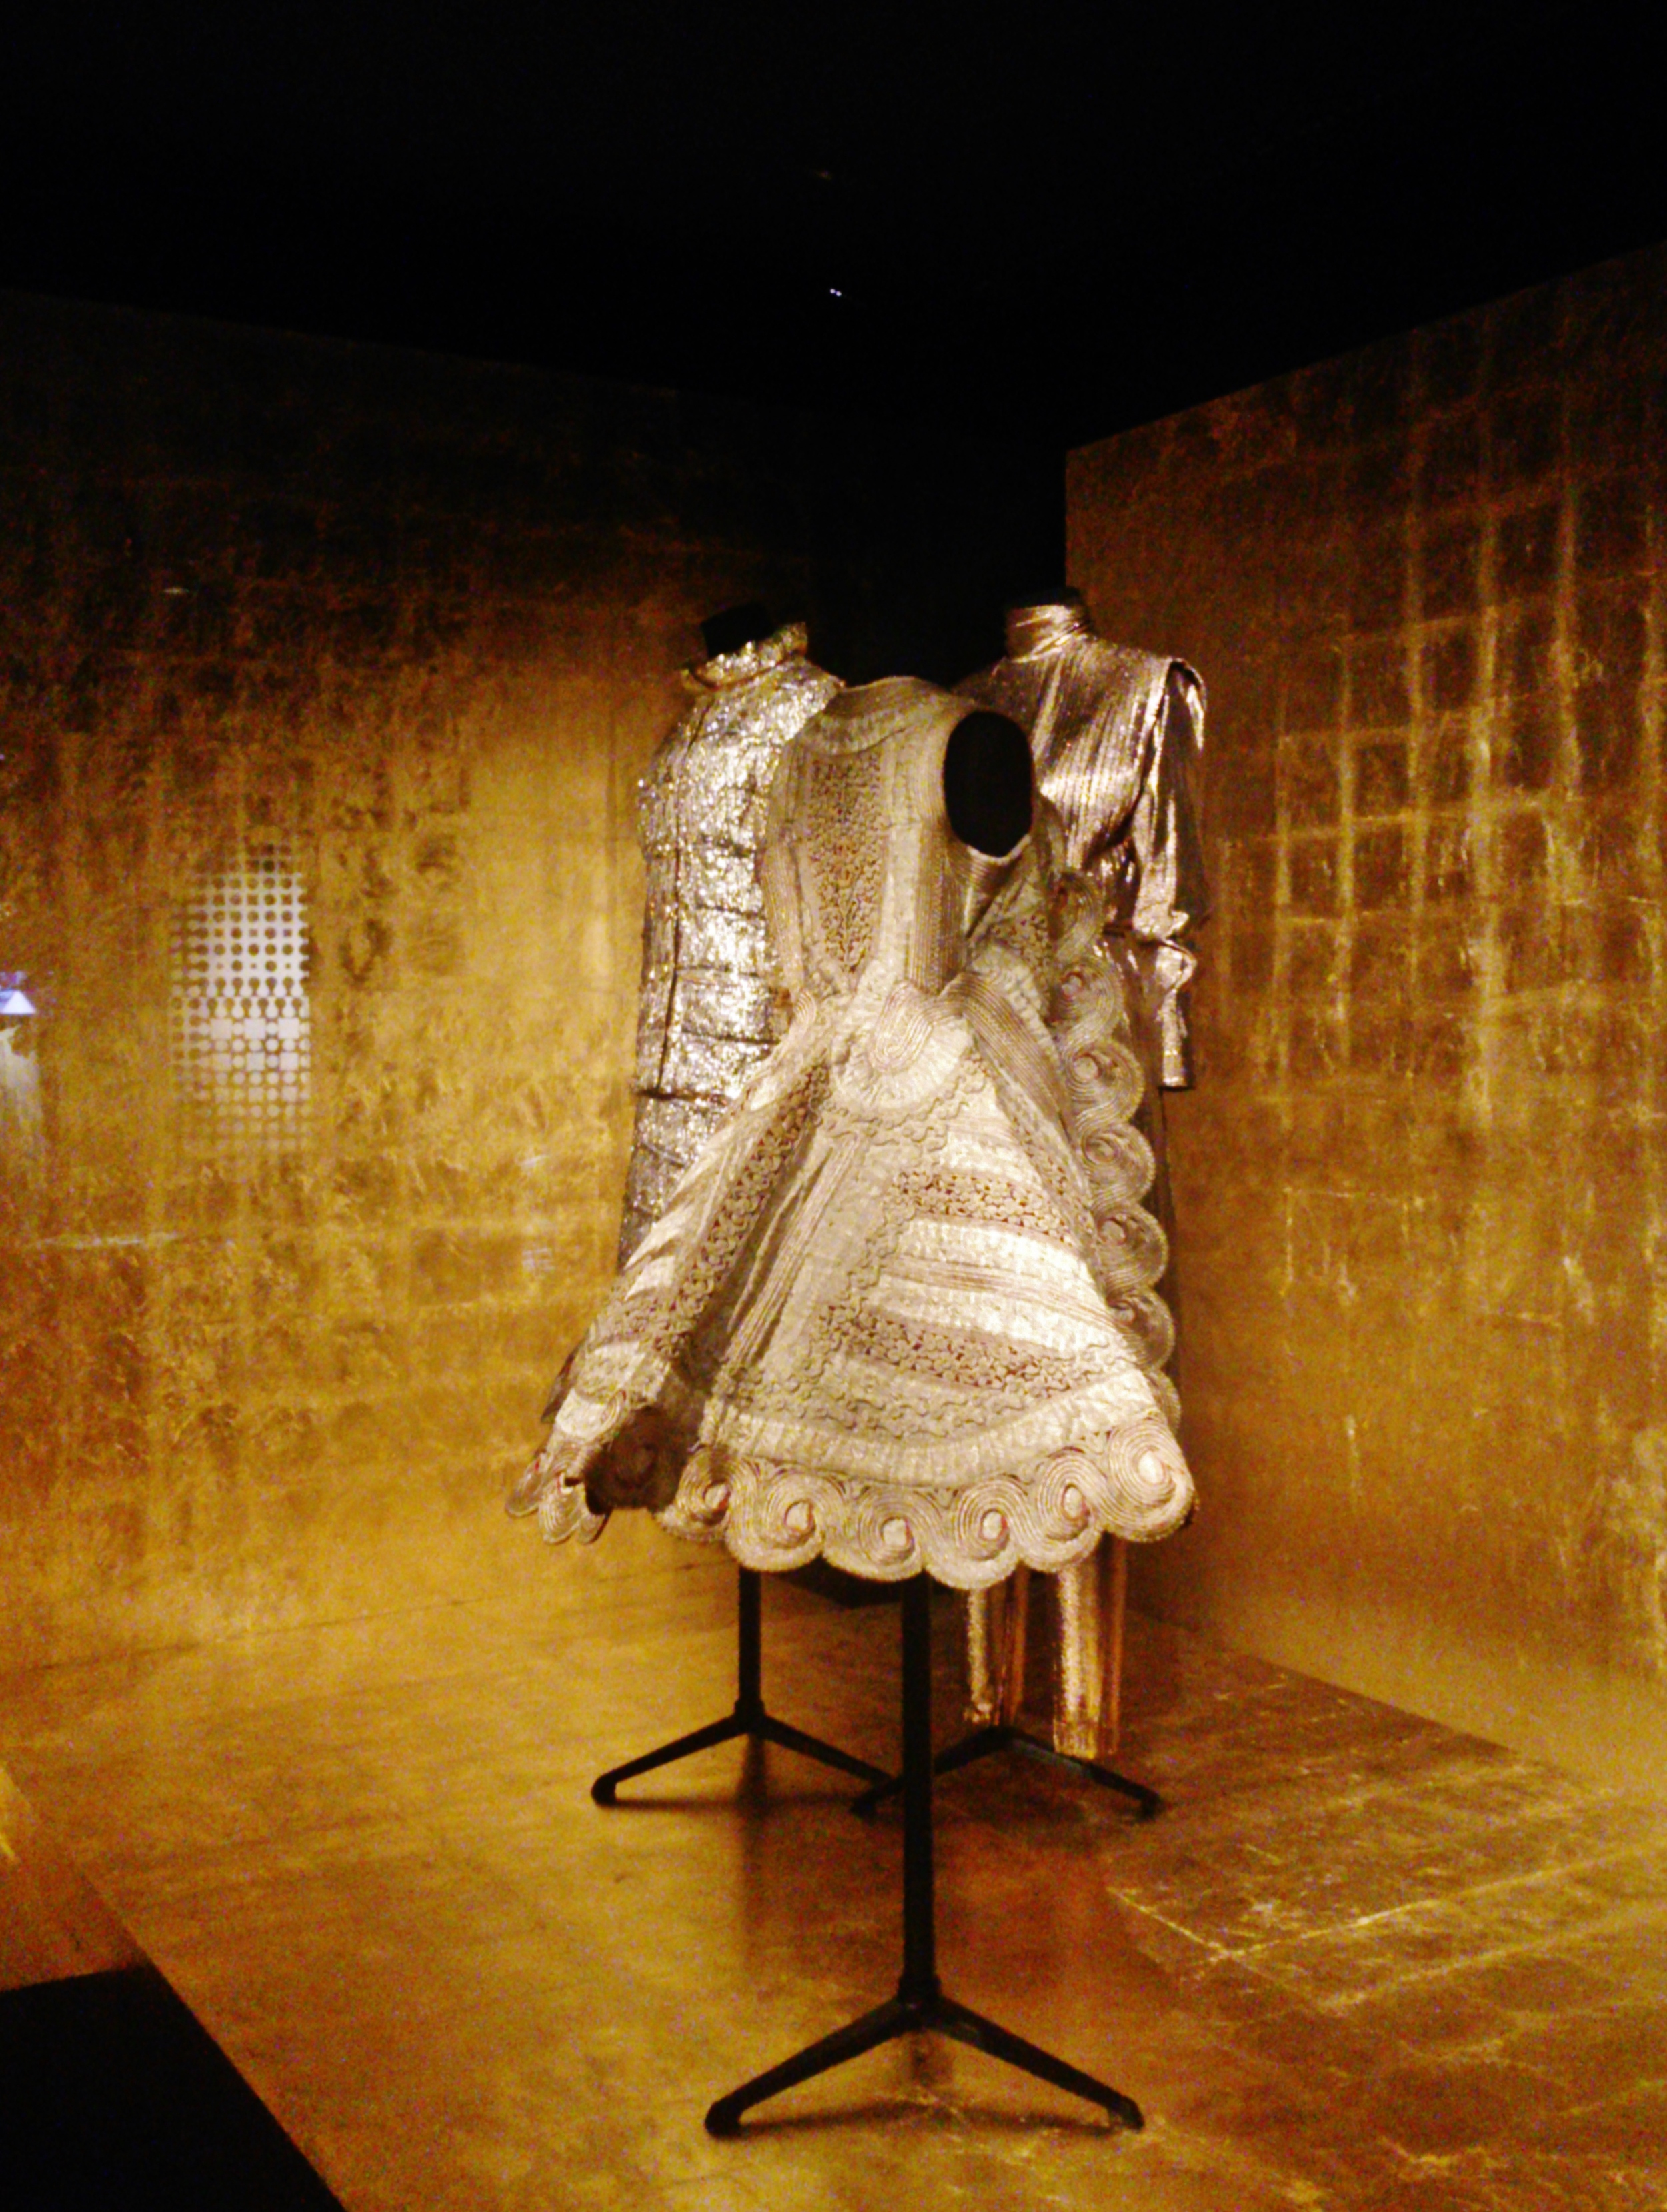 Golden garments, at Dries Van Noten's current Paris exhibition including a beautifully embroidered antique piece.